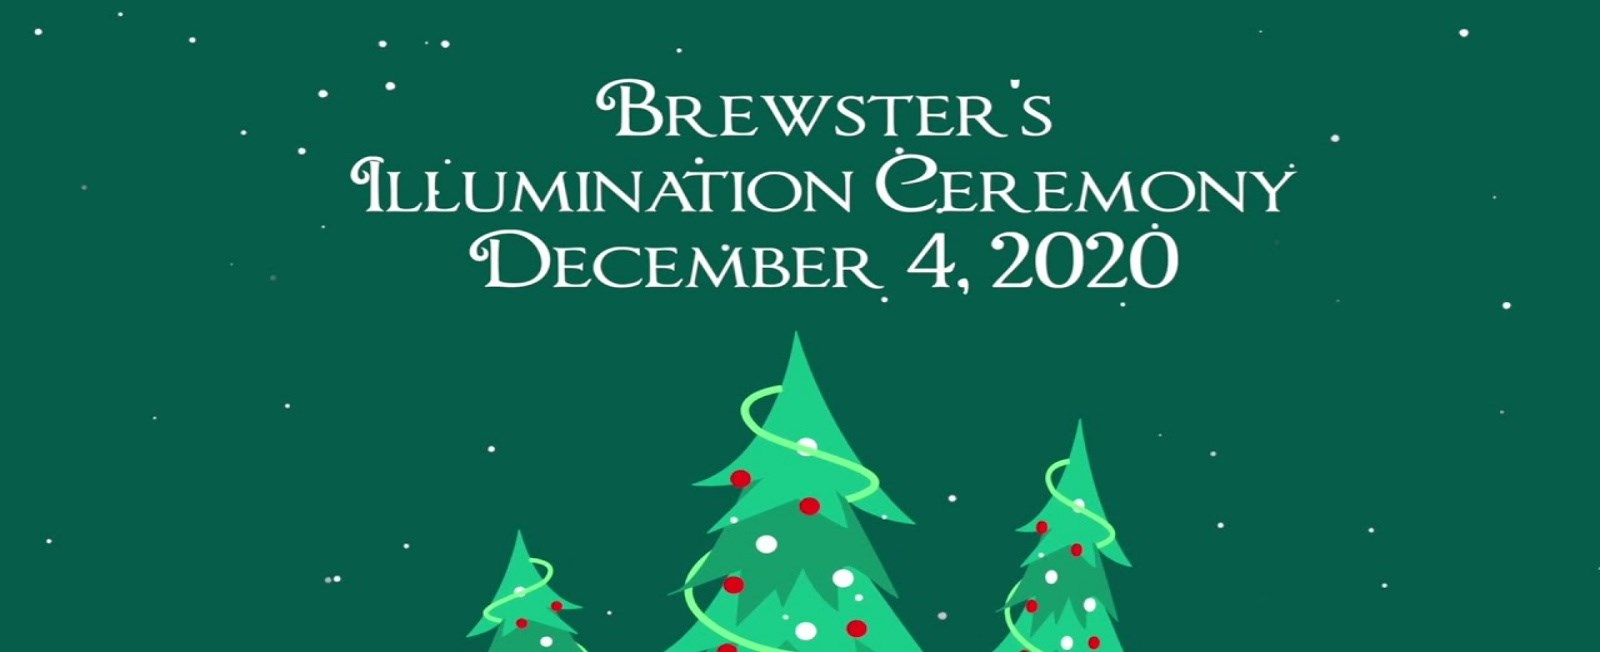 We have watched the Brewster town tree at Drummer Boy Park grow in size and in meaning. We celebrate the lights each holiday season, and share our story about the man who inspired the tree.